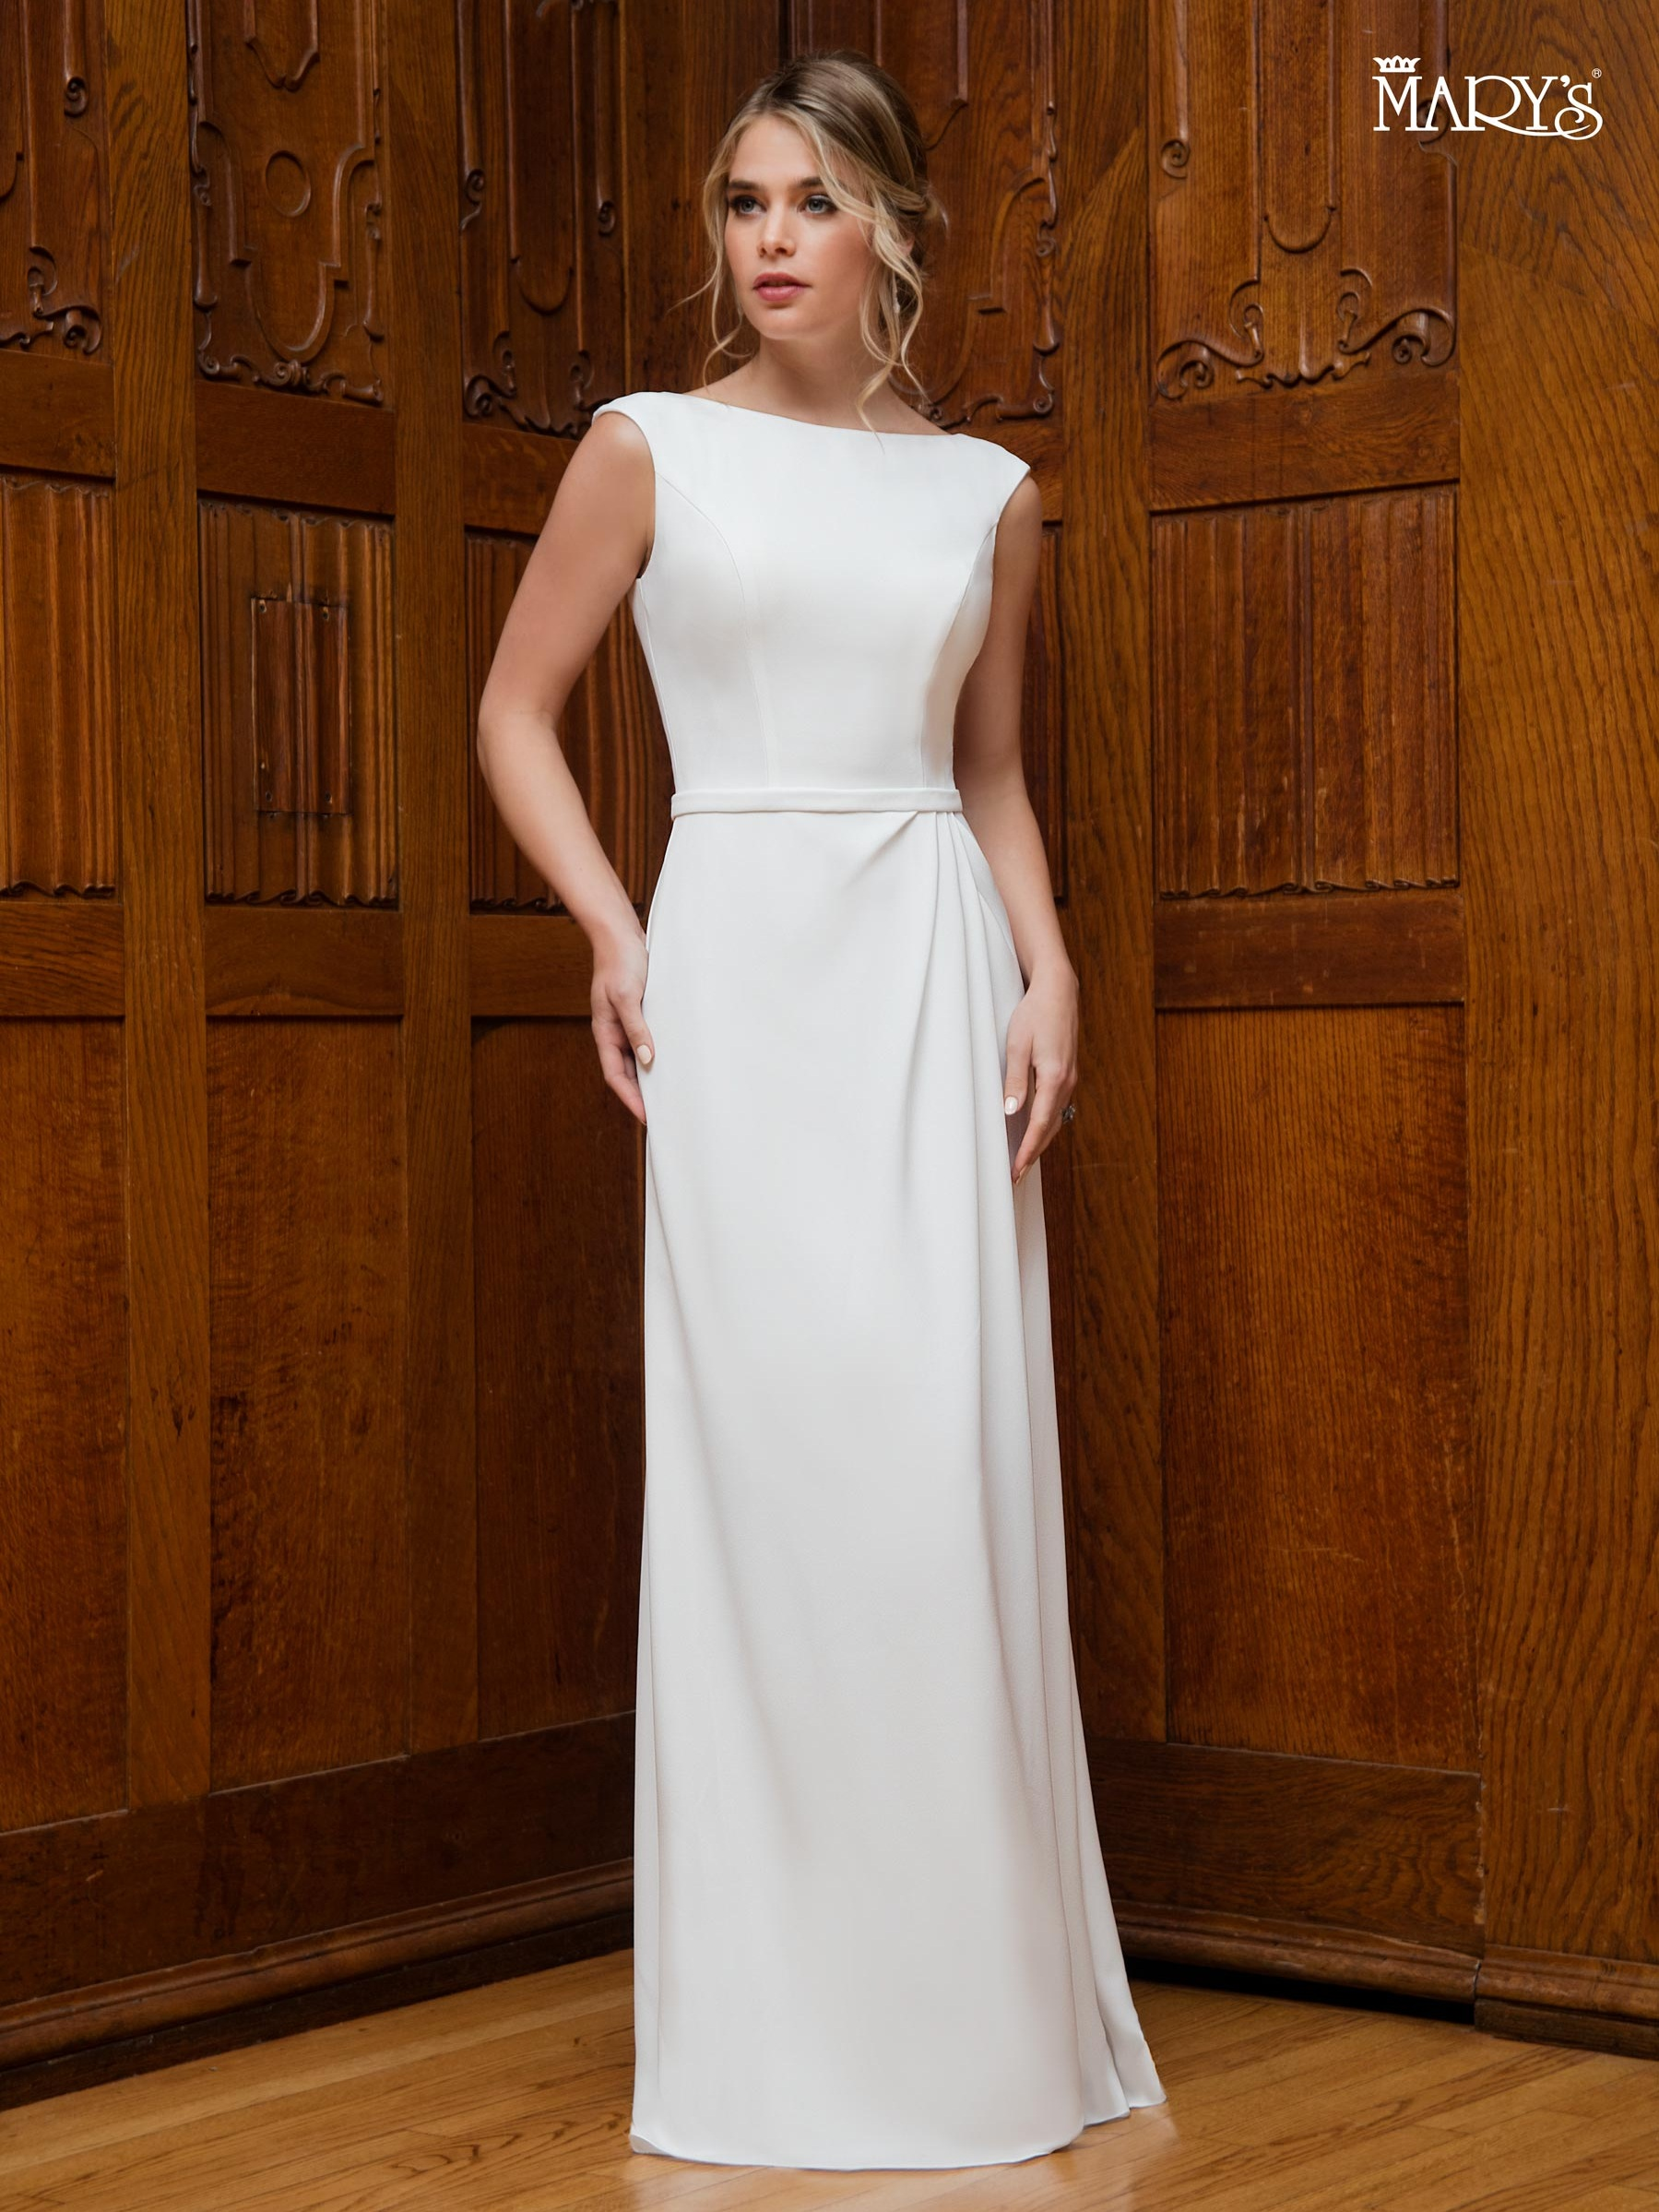 Mary's Bridal MB1003 - Clearance Price : 295$